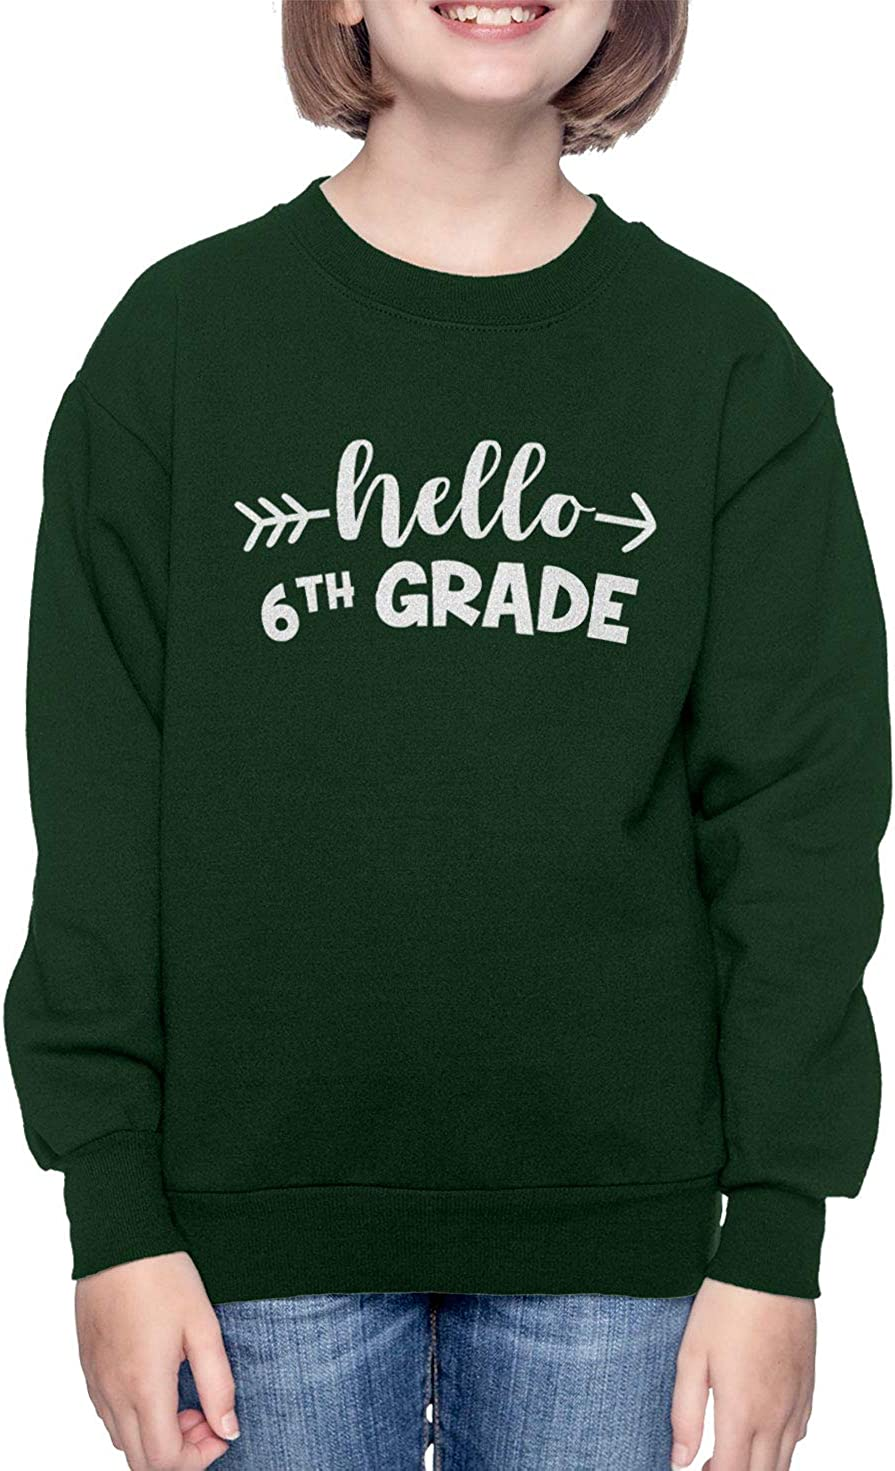 Back to School Youth Fleece Crewneck Sweater Forest Green, Large Haase Unlimited Hello 6th Grade